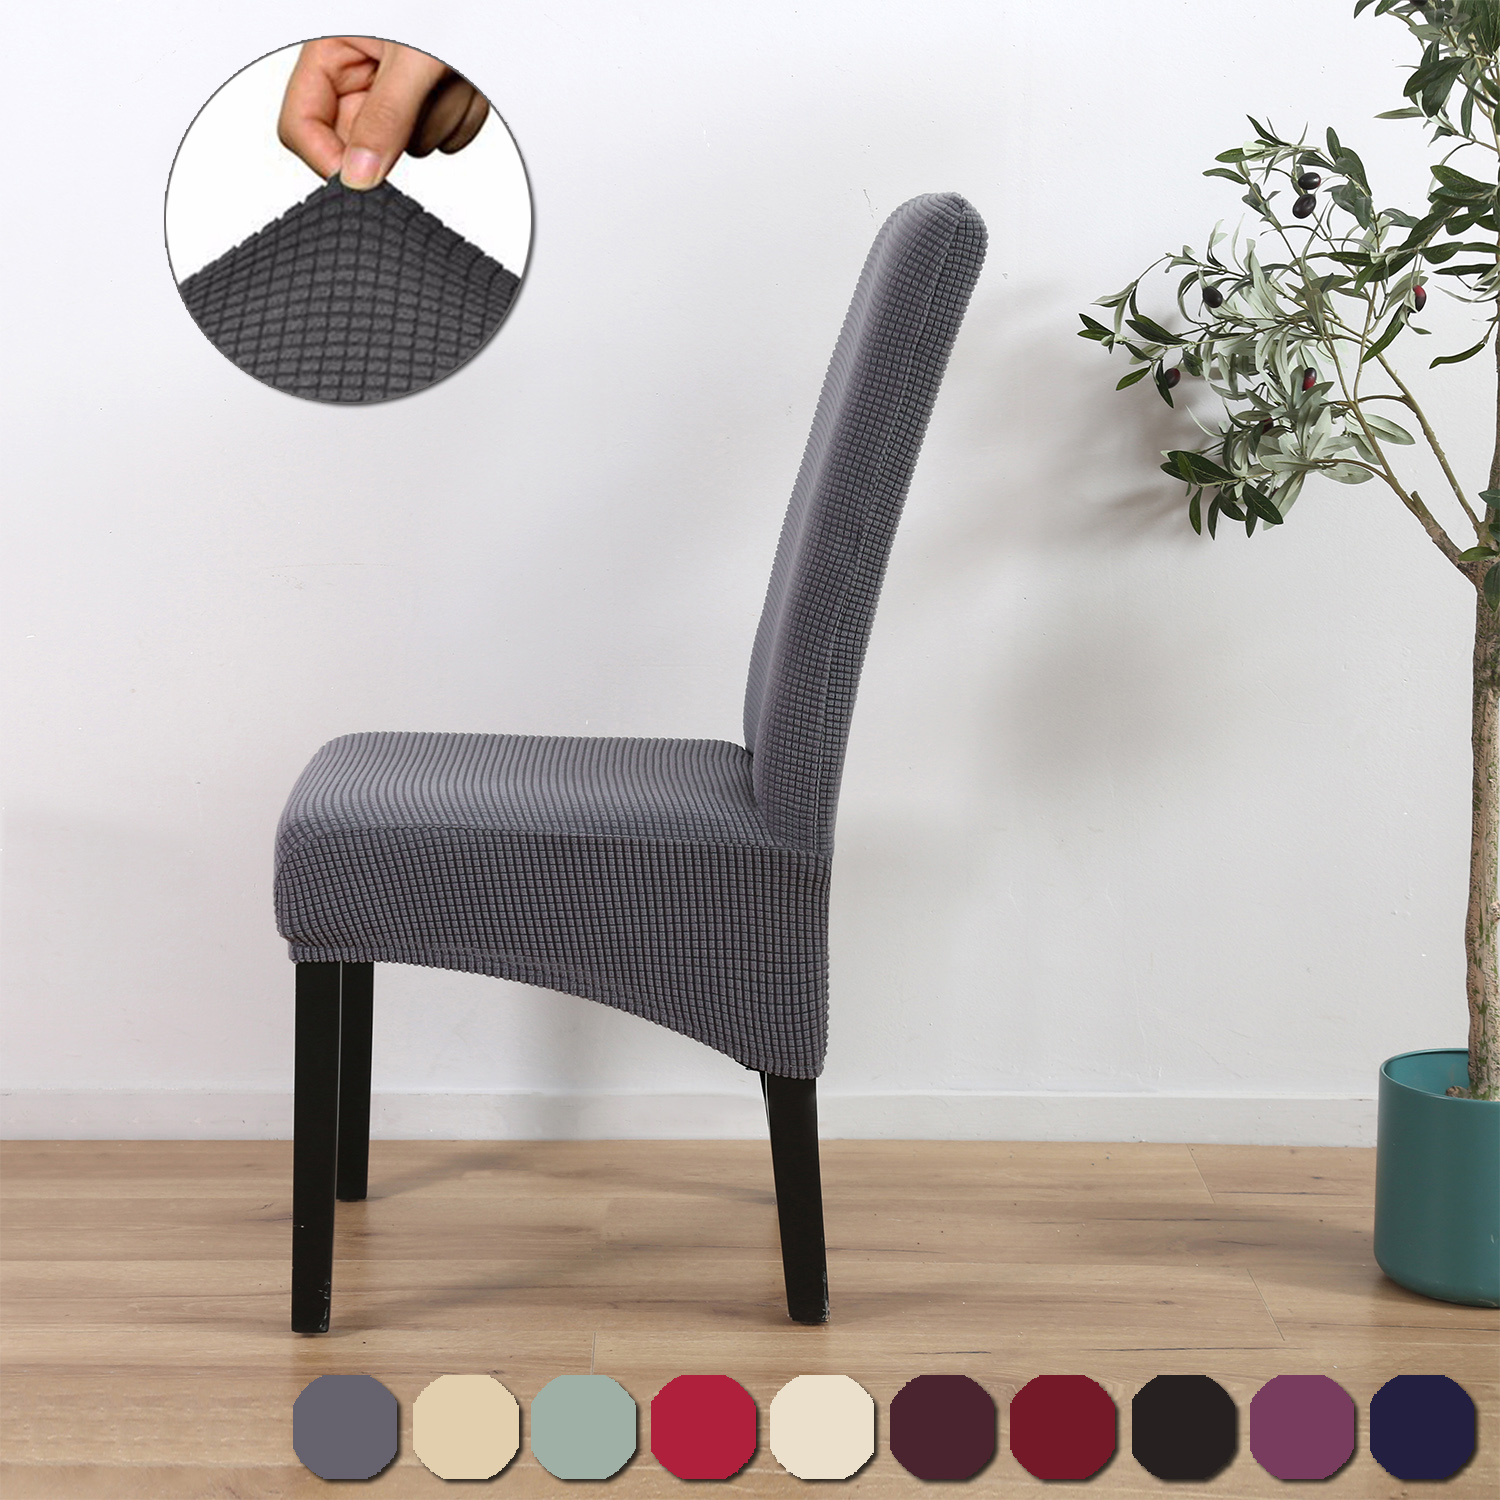 Hotel Wedding Plaid Chair Cover Stretch Banquet Seat Case Large Xl Decor Dining Room Seat Plain Color Chair Cover Restaurant